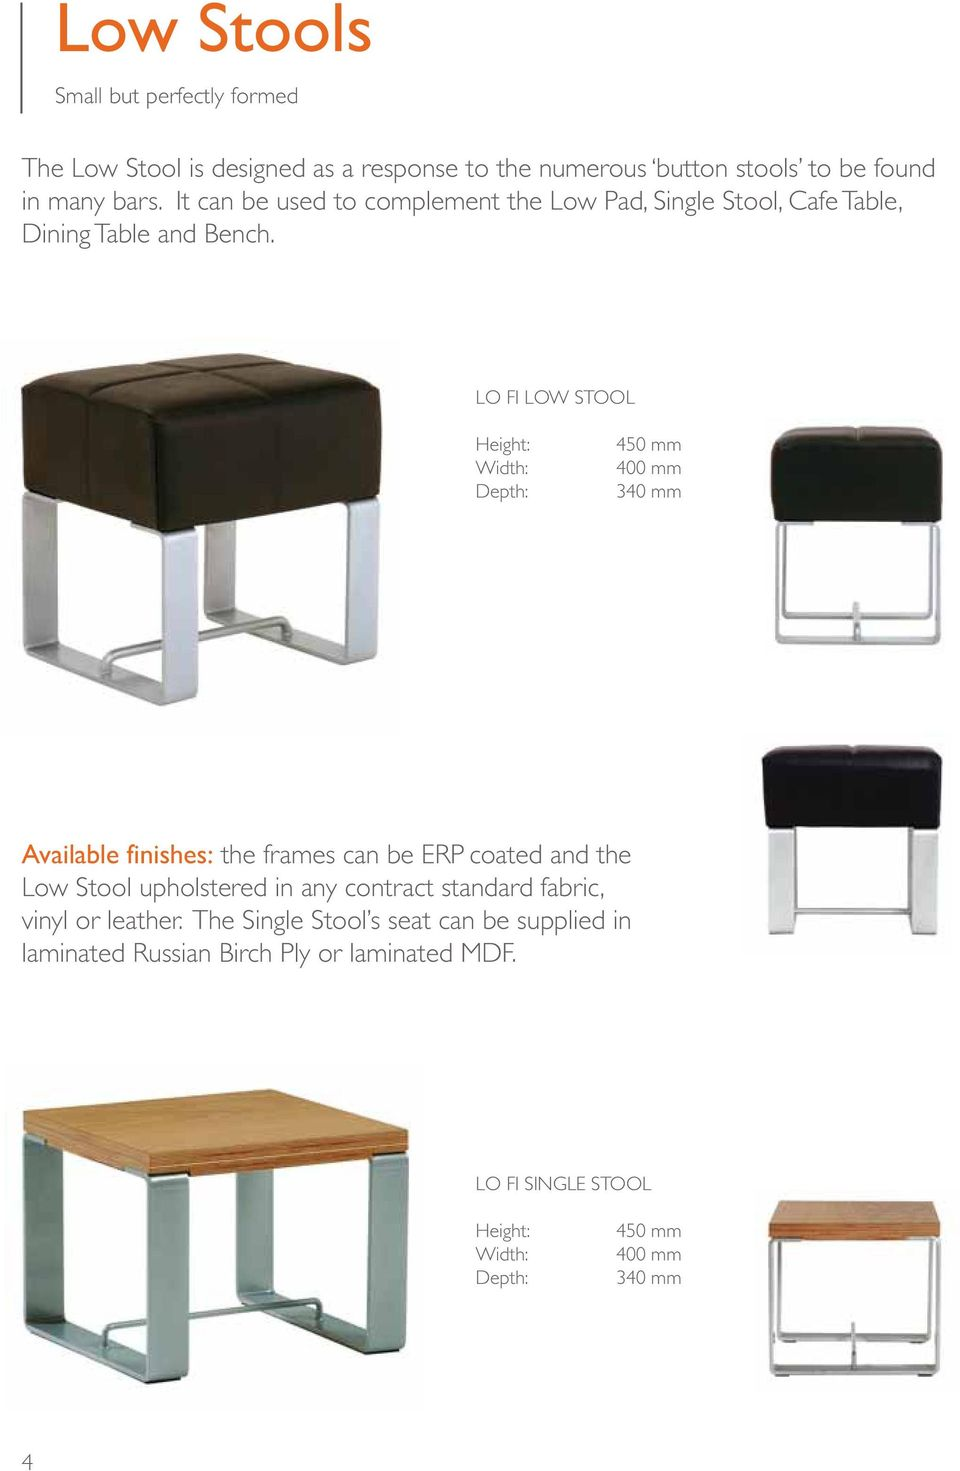 LO FI LOW STOOL 450 mm 400 mm 340 mm Available finishes: the frames can be ERP coated and the Low Stool upholstered in any